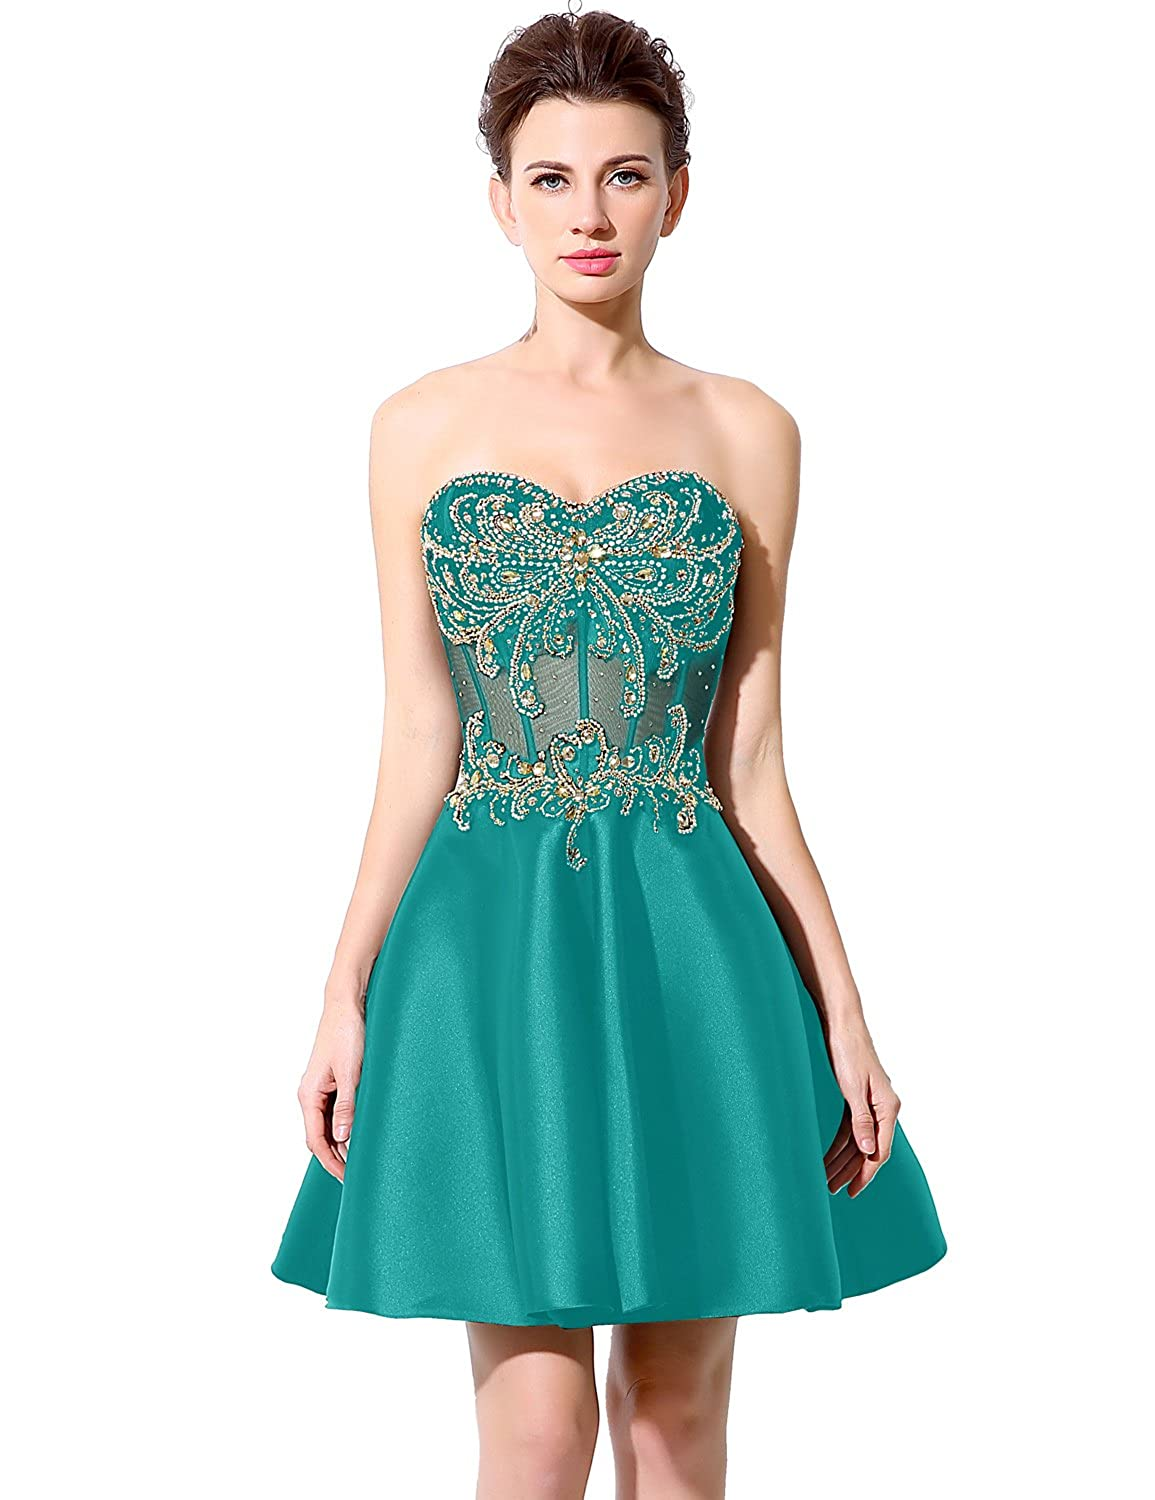 Favebridal Women's Strapless Beading Crystal Stain Prom Dress Party Gown LX005